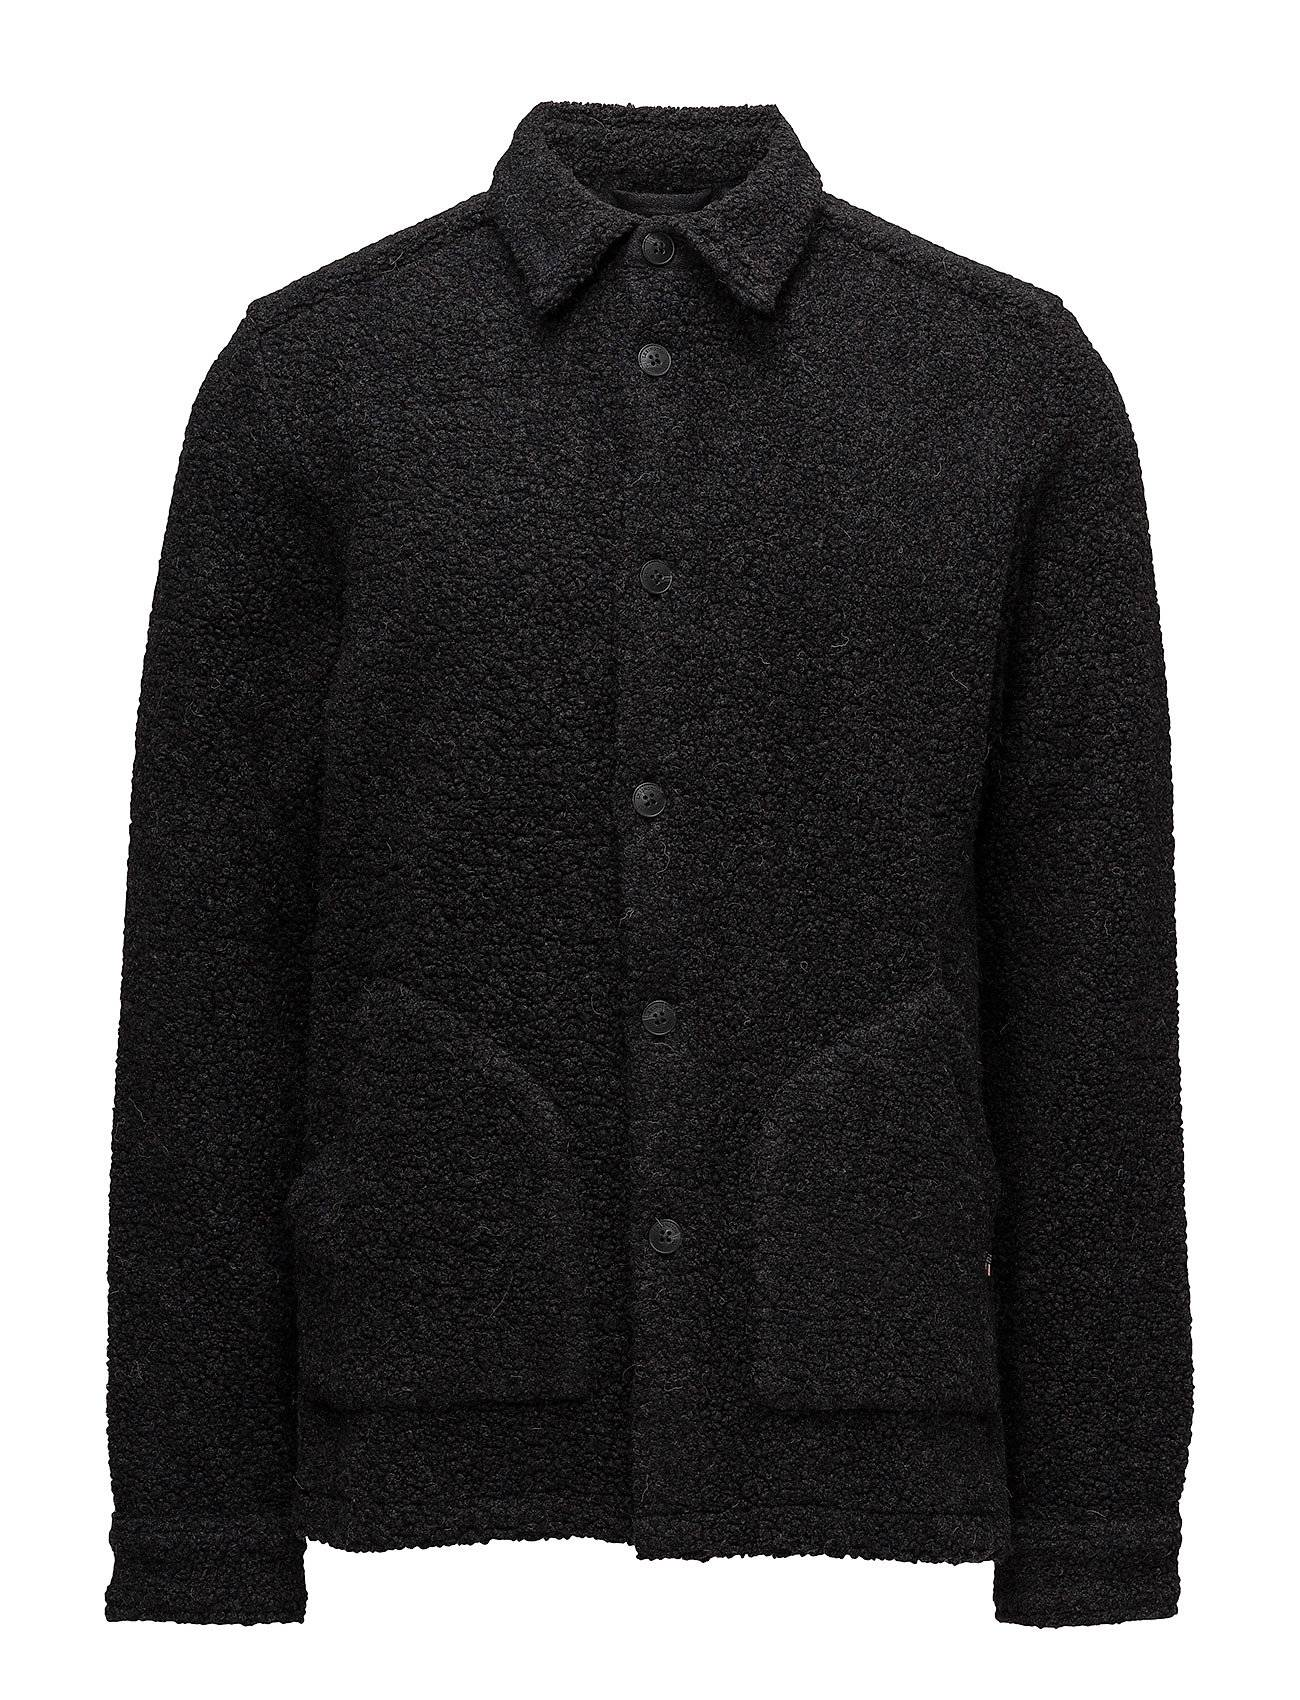 Lexington Clothing Dean Terry Jacket